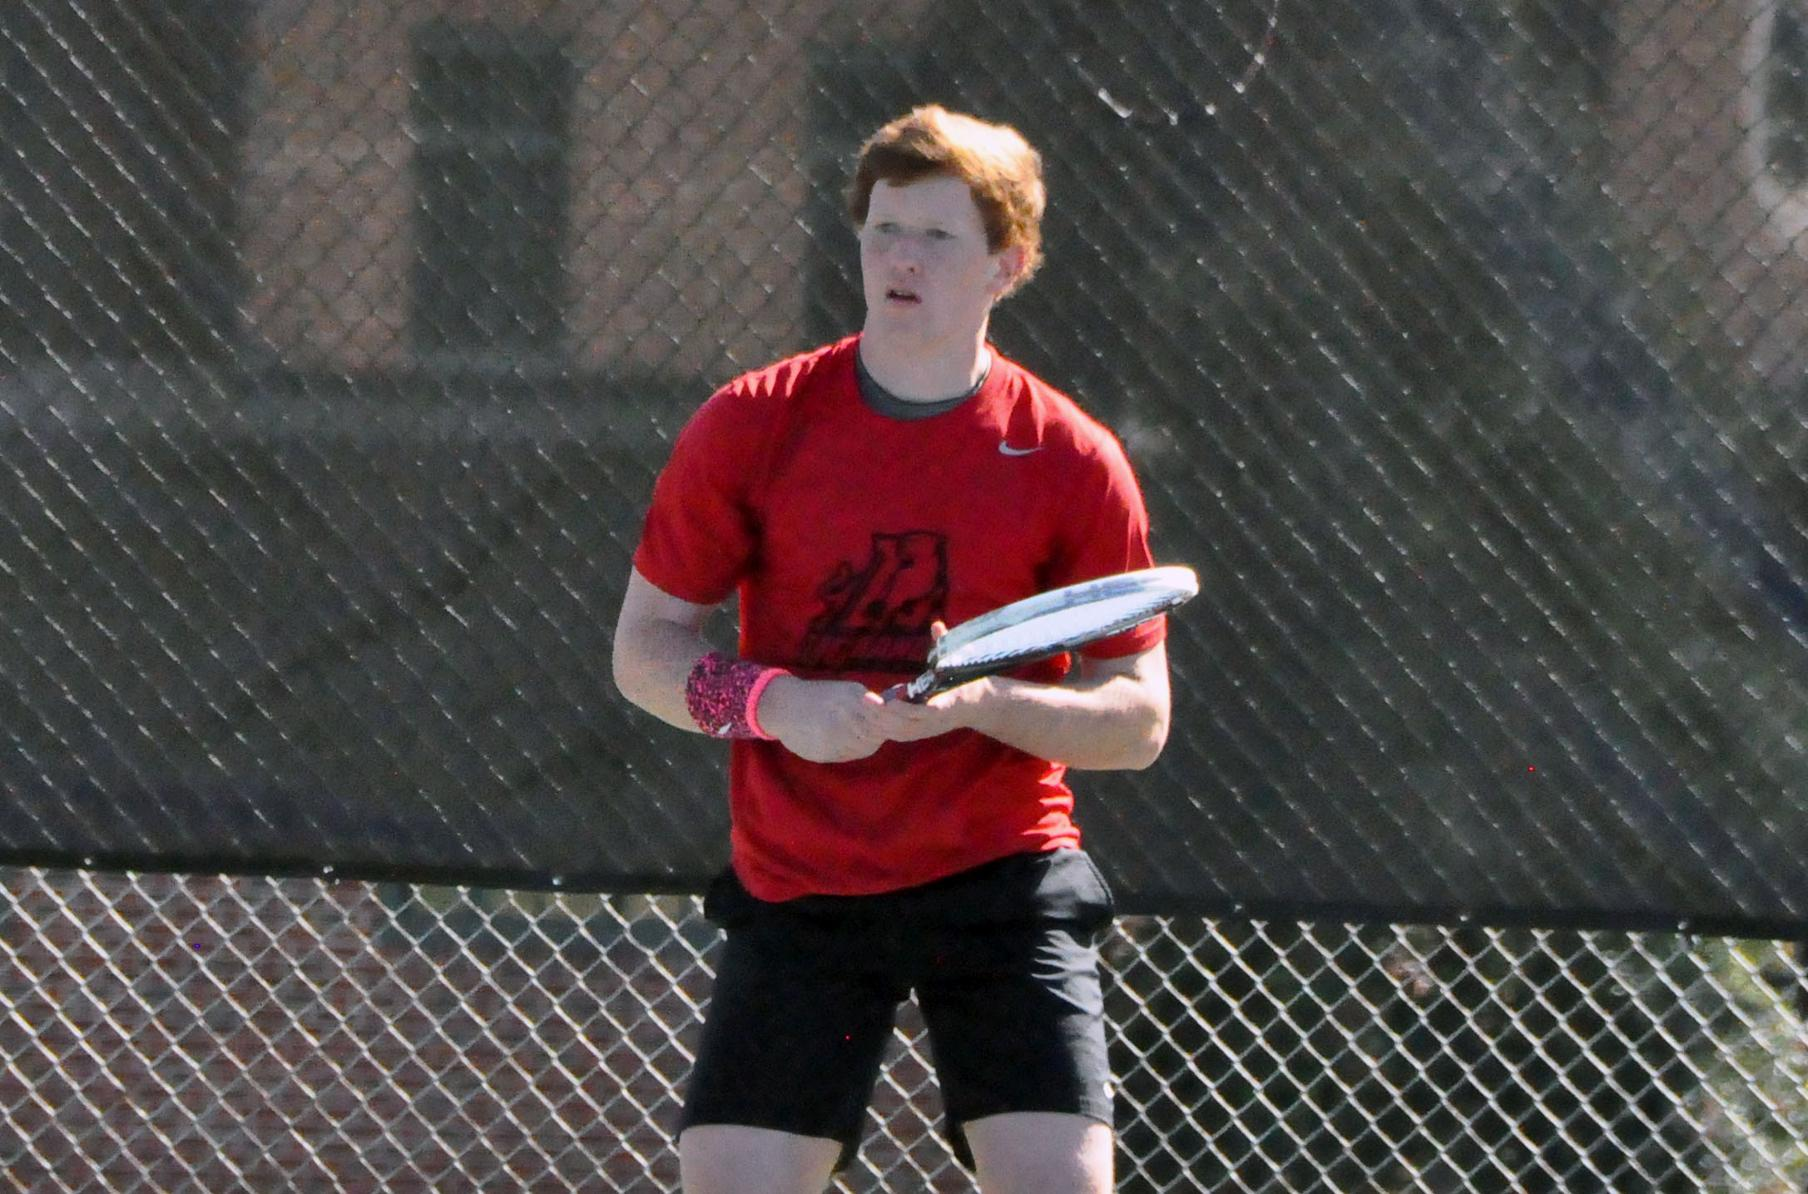 Men's Tennis: Panthers blank Rust 9-0 in non-conference match